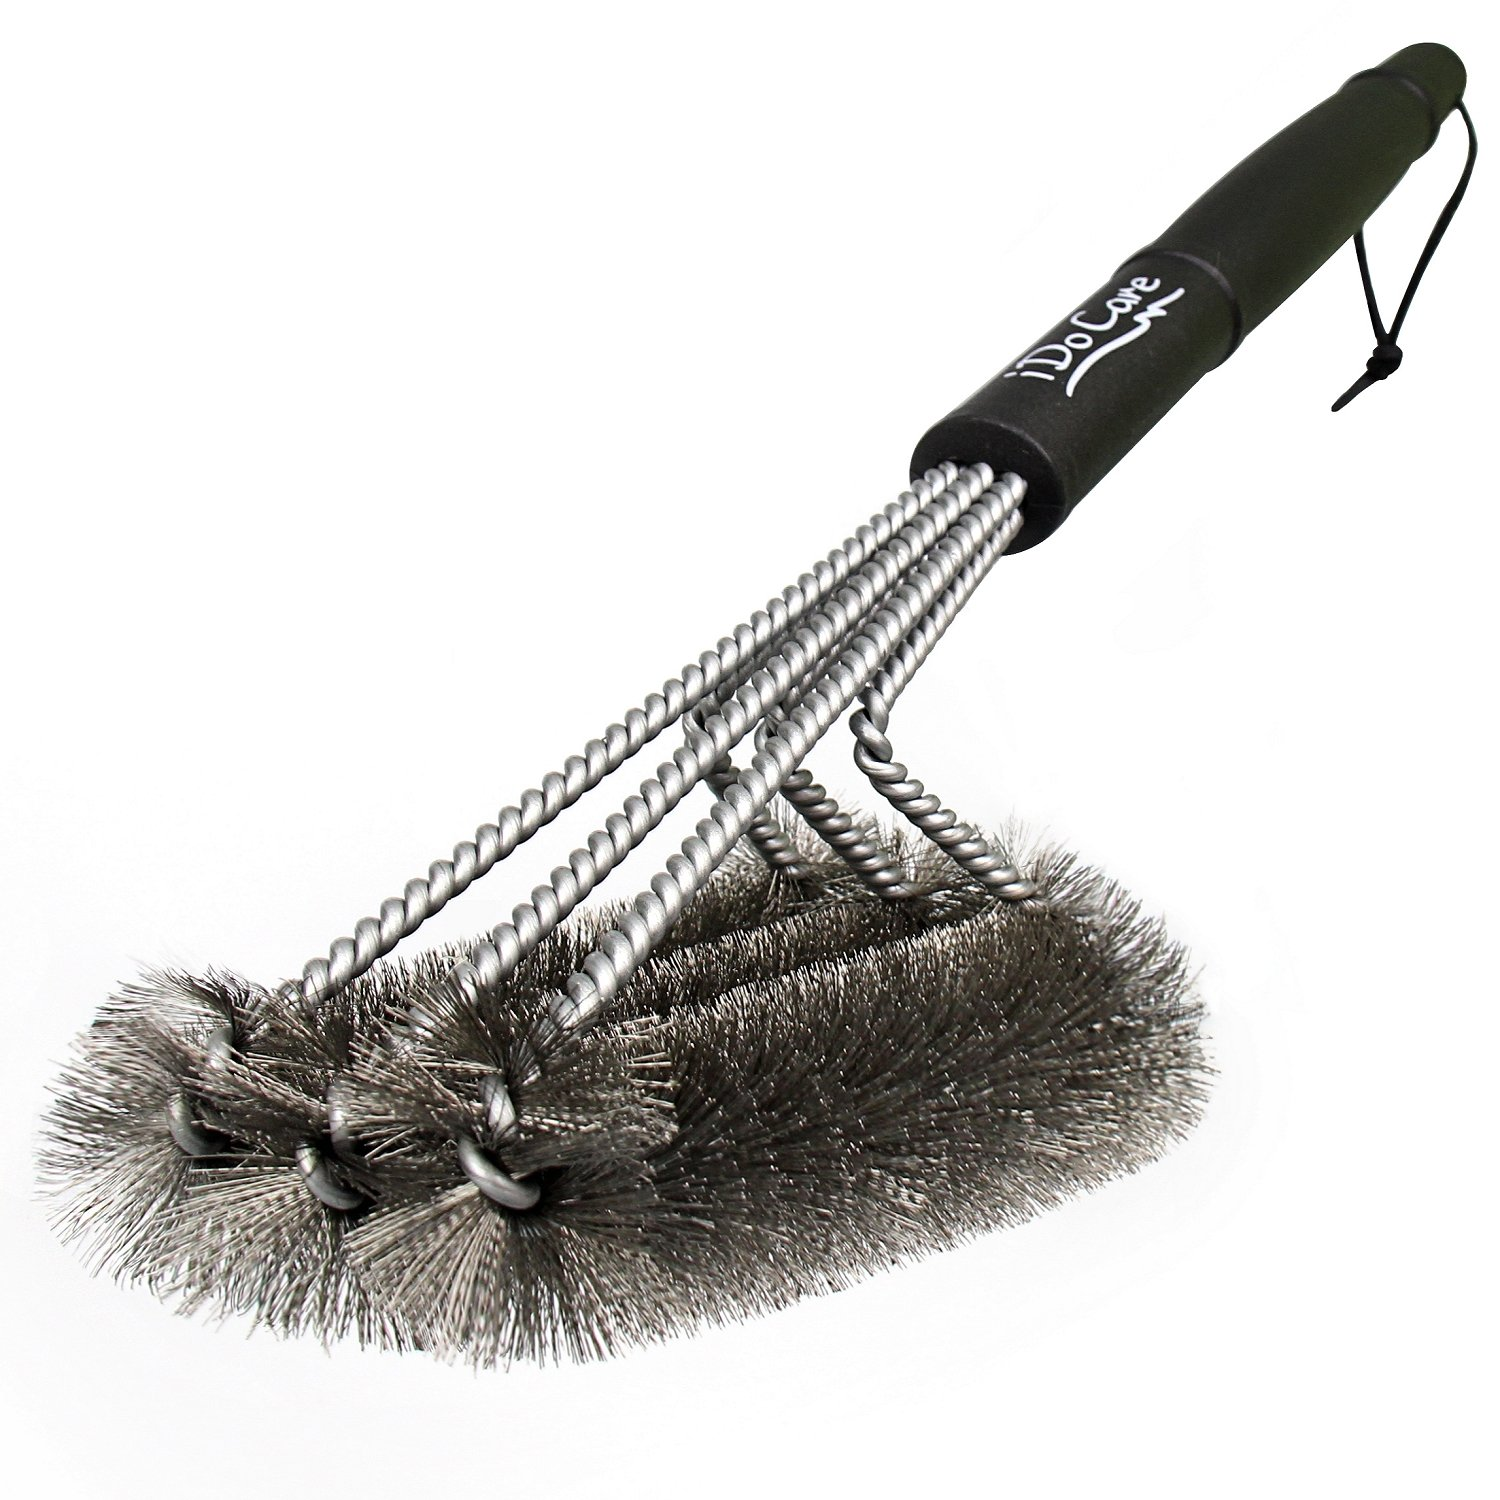 iDoCare 18'' Wire Grill Brush - 3 Stainless Steel Brushes in 1 - Best Barbecue Grill Brush Cleaner - Perfect for Weber, Traeger, Char-Broil, Gas, Electric, Porcelain & Infrared Grills